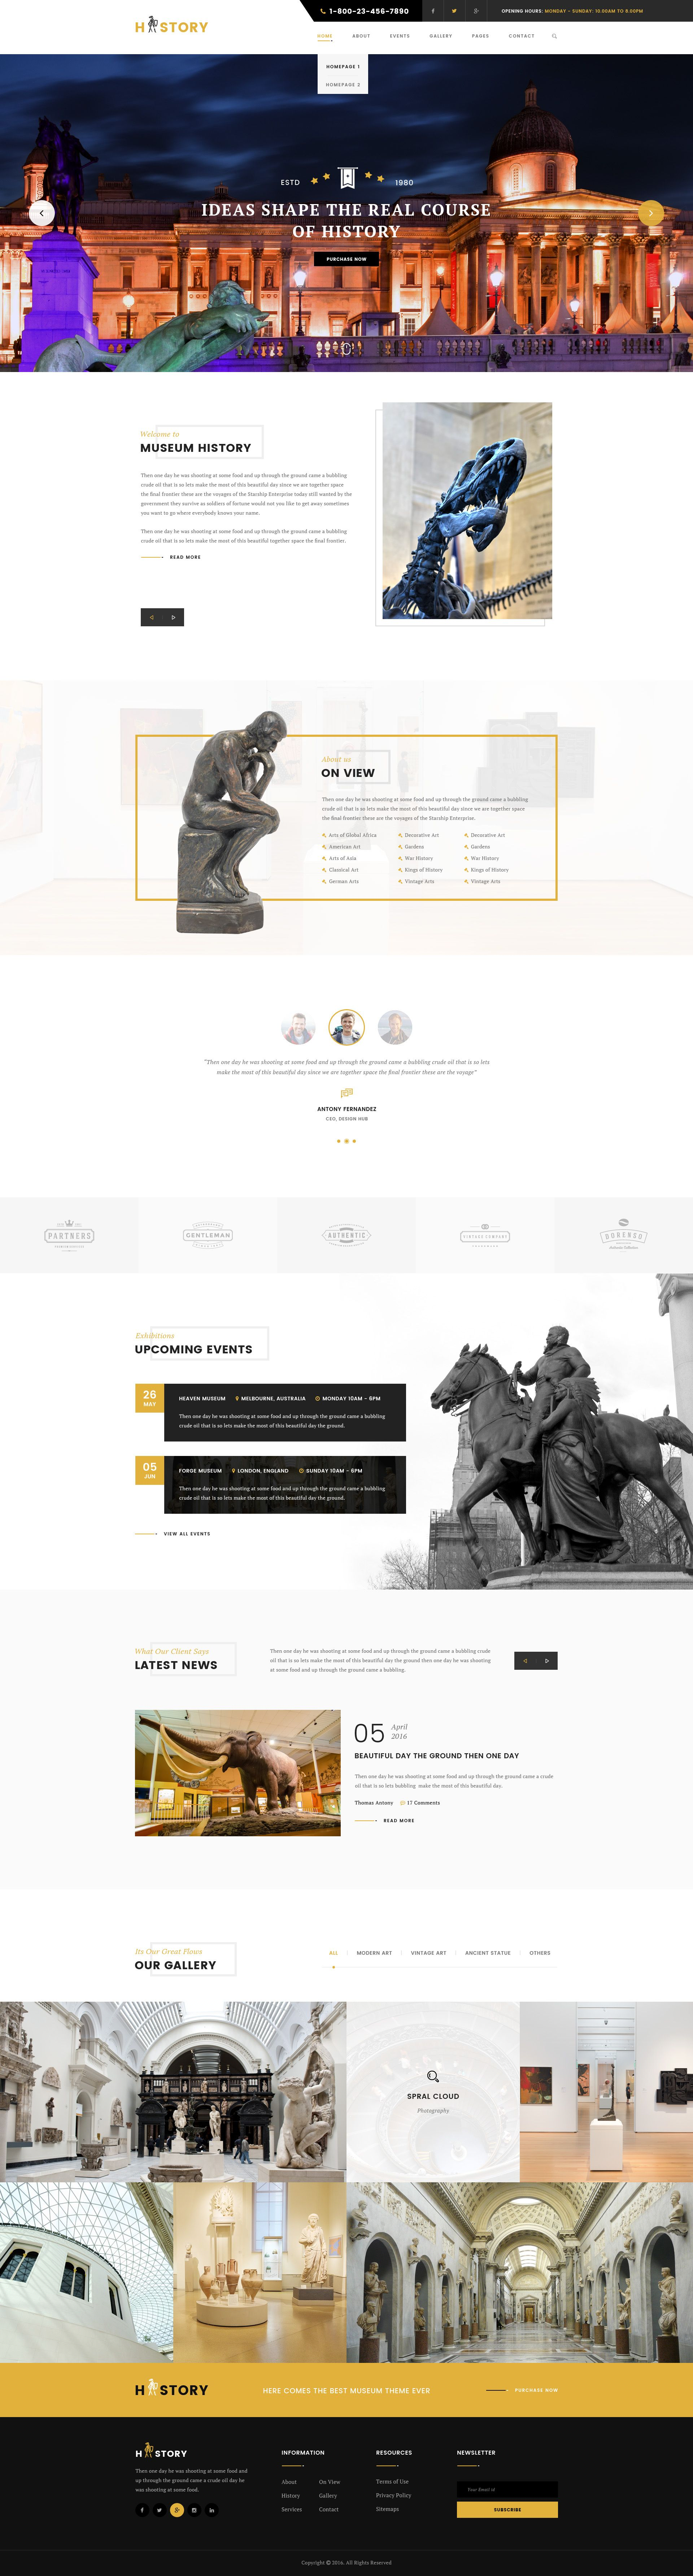 History : Museum PSD Template   Psd templates, Template and Museums